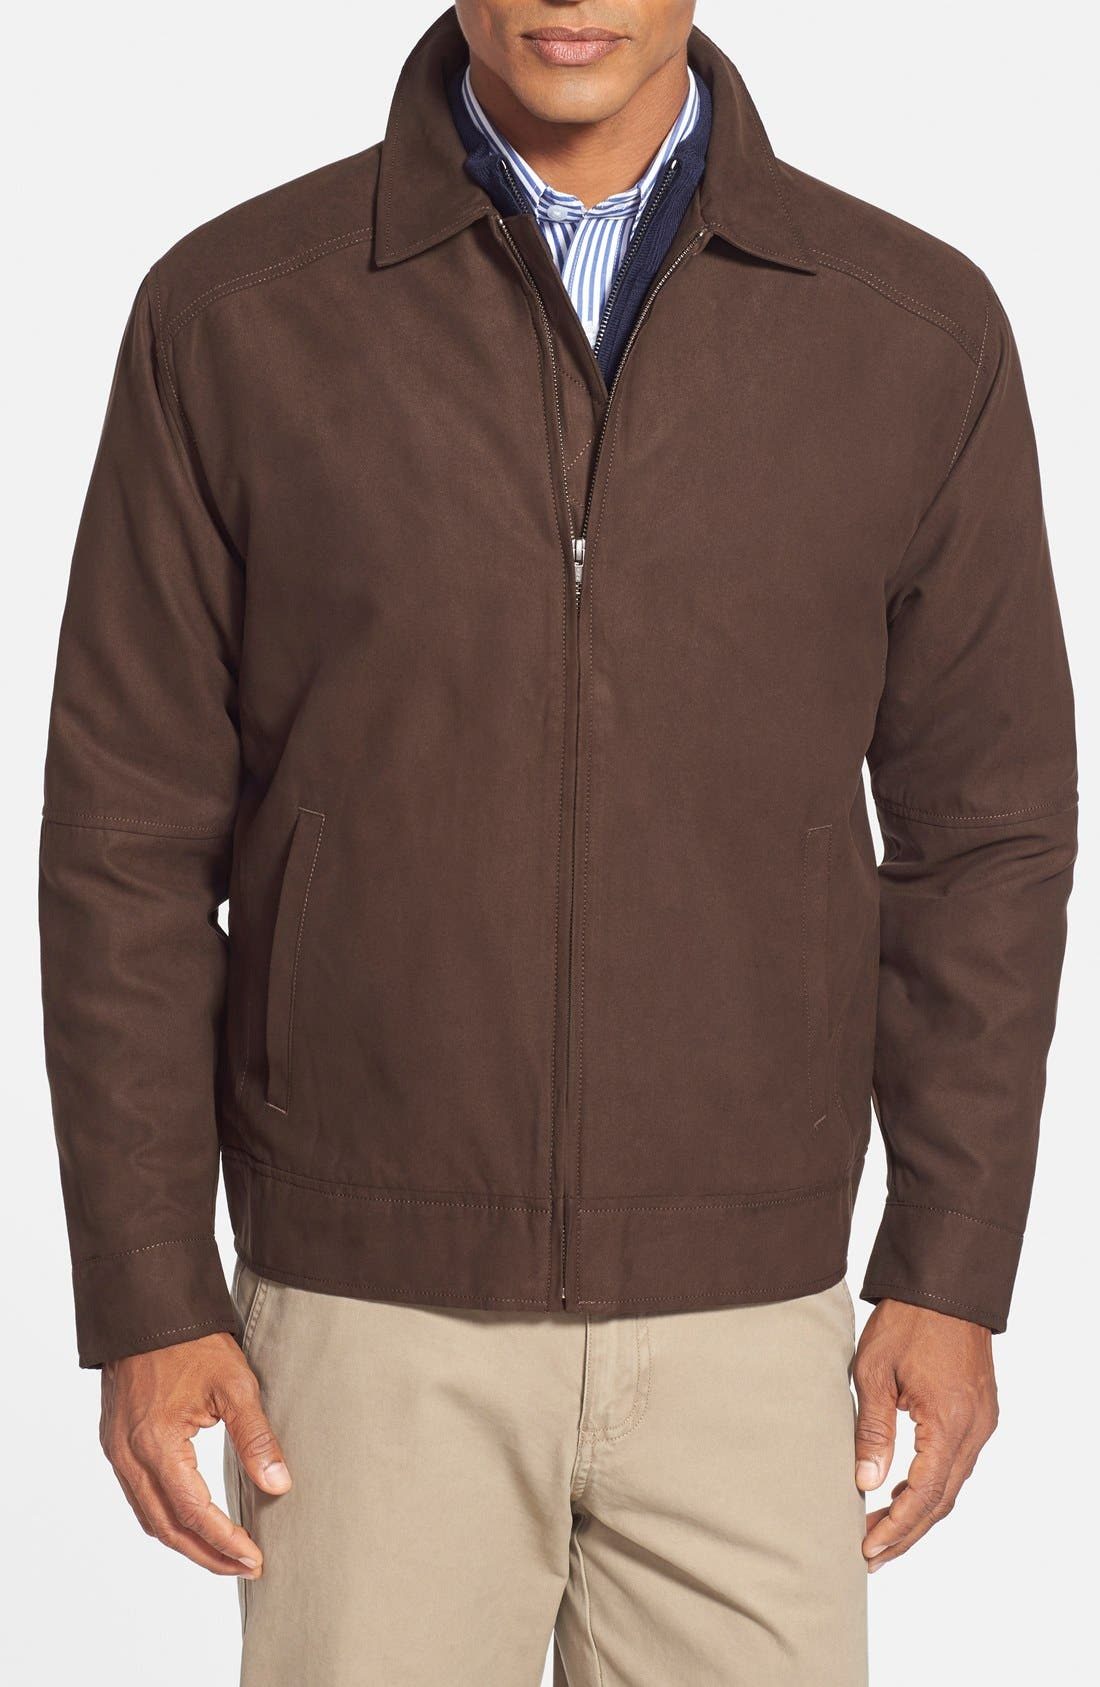 'Roosevelt' Classic Fit Water Resistant Full Zip Jacket,                             Main thumbnail 1, color,                             Bittersweet Brown